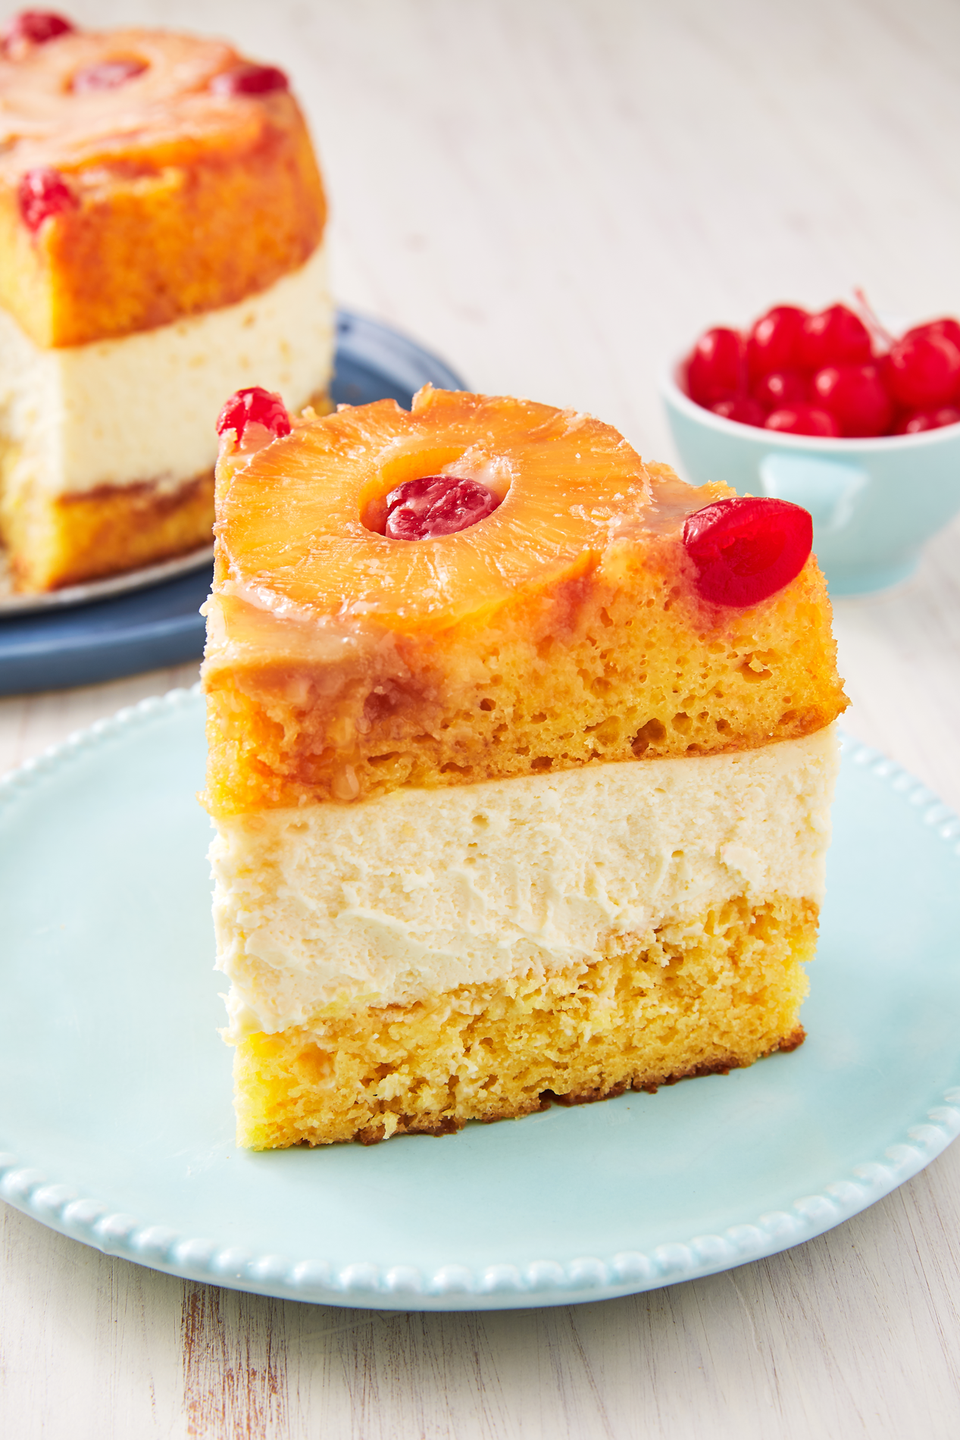 """<p>We didn't know pineapple upside down cake could be even better. </p><p>Get the recipe from <a href=""""https://www.delish.com/cooking/recipe-ideas/recipes/a56415/pineapple-upside-down-cheesecake-recipe/"""" rel=""""nofollow noopener"""" target=""""_blank"""" data-ylk=""""slk:Delish"""" class=""""link rapid-noclick-resp"""">Delish</a>. </p>"""